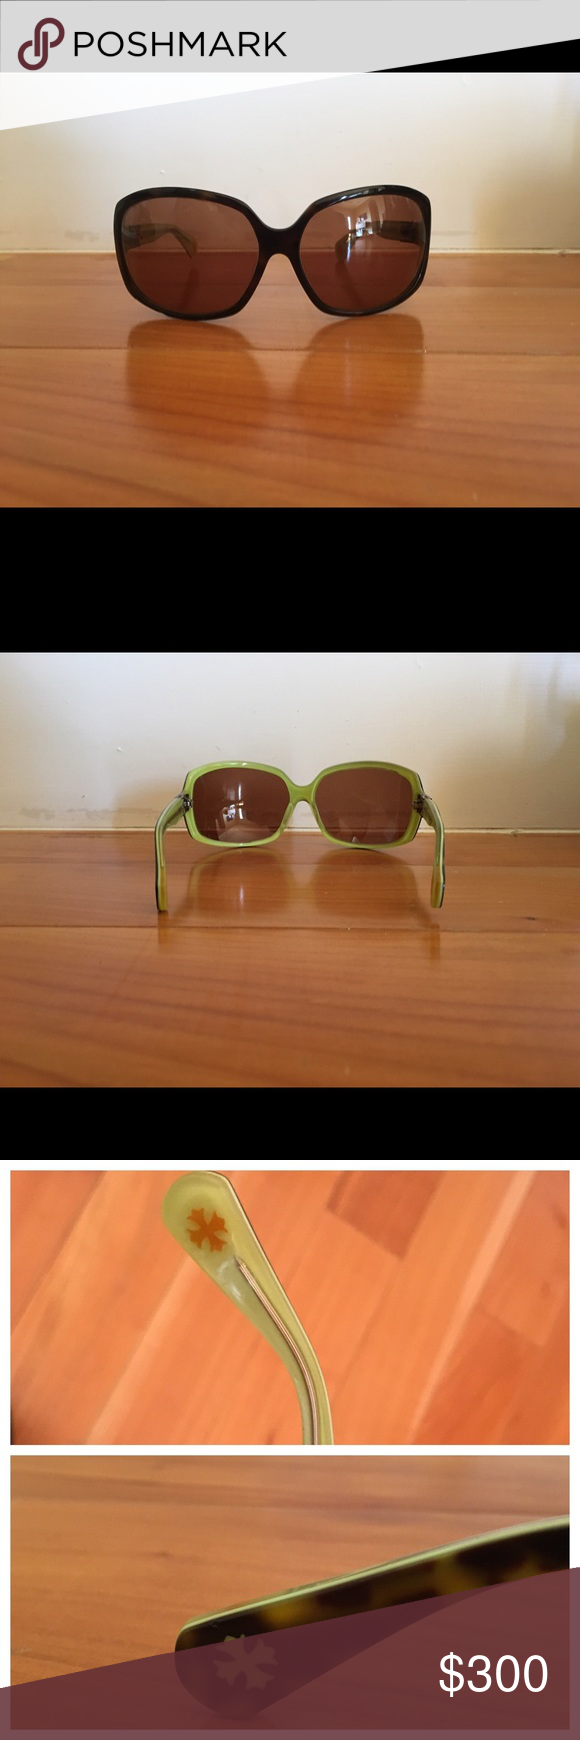 Chrome Heart Sunglasses Chrome Heart Sunglasses. Turtle shell with green lining and case. Chrome Hearts Accessories Sunglasses